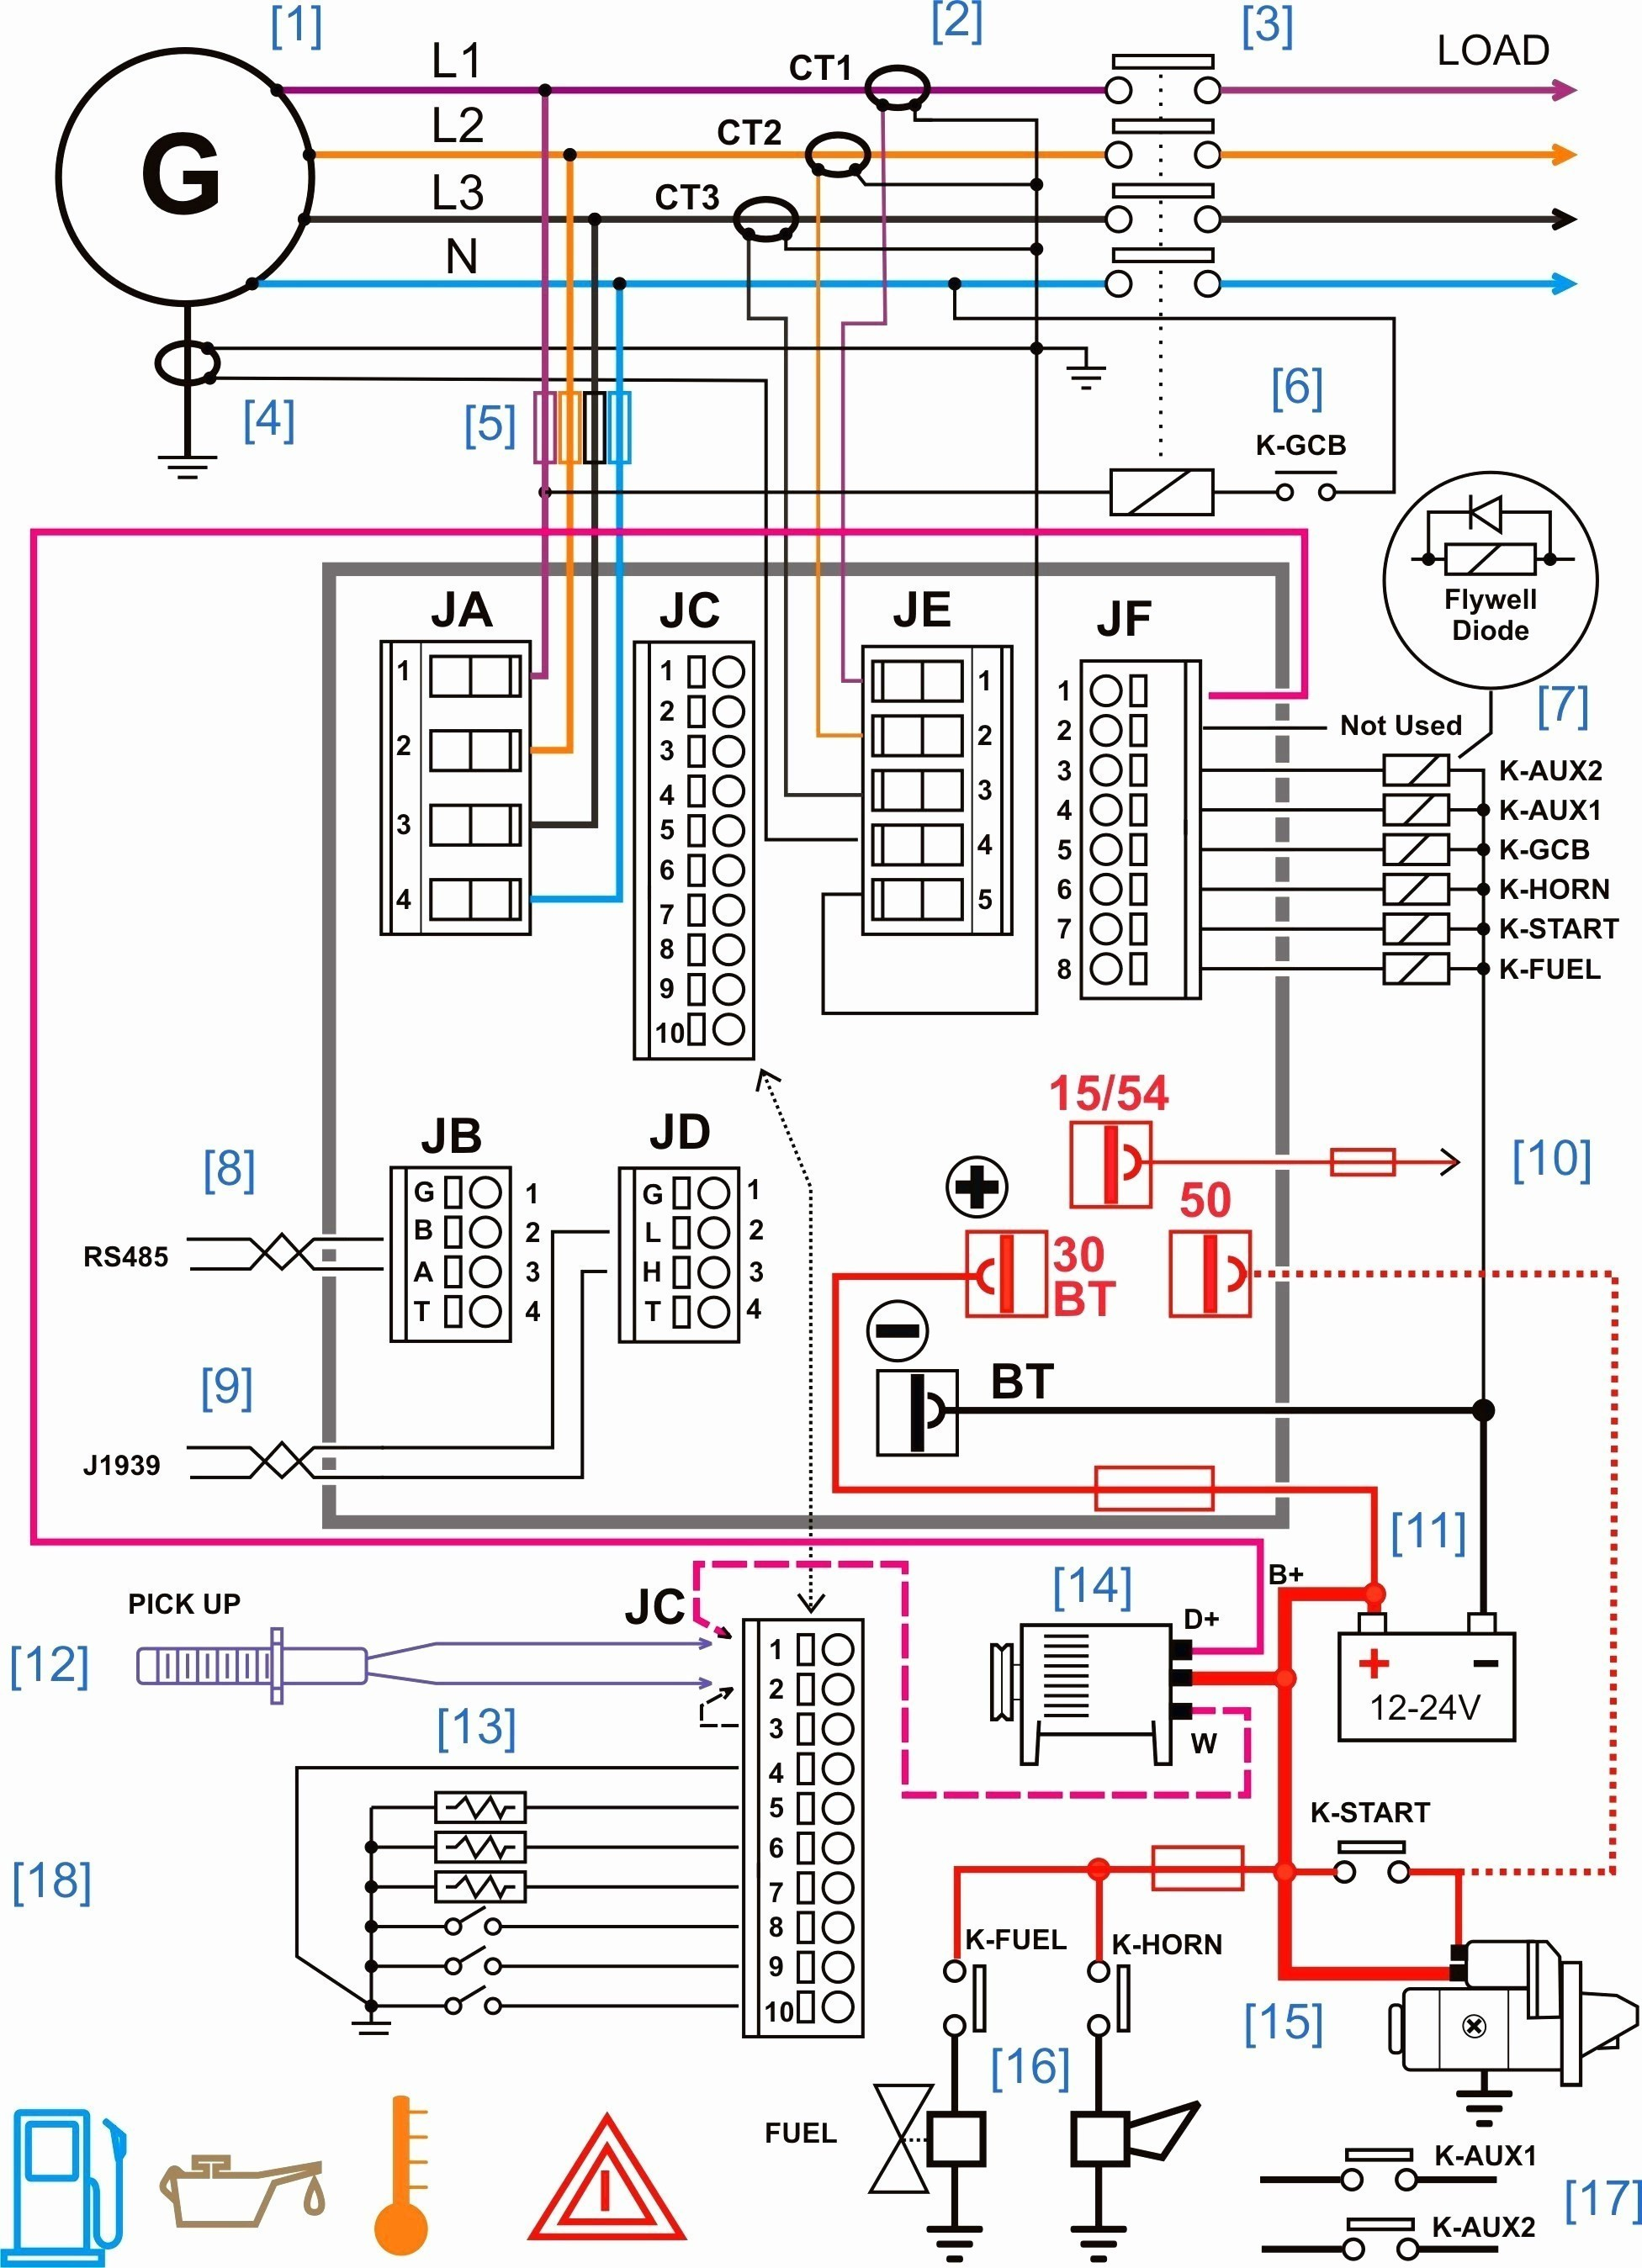 Car Amplifier Wiring Diagram Wiring Diagram Book Best Wiring Harness Diagram Book Car Stereo Of Car Amplifier Wiring Diagram